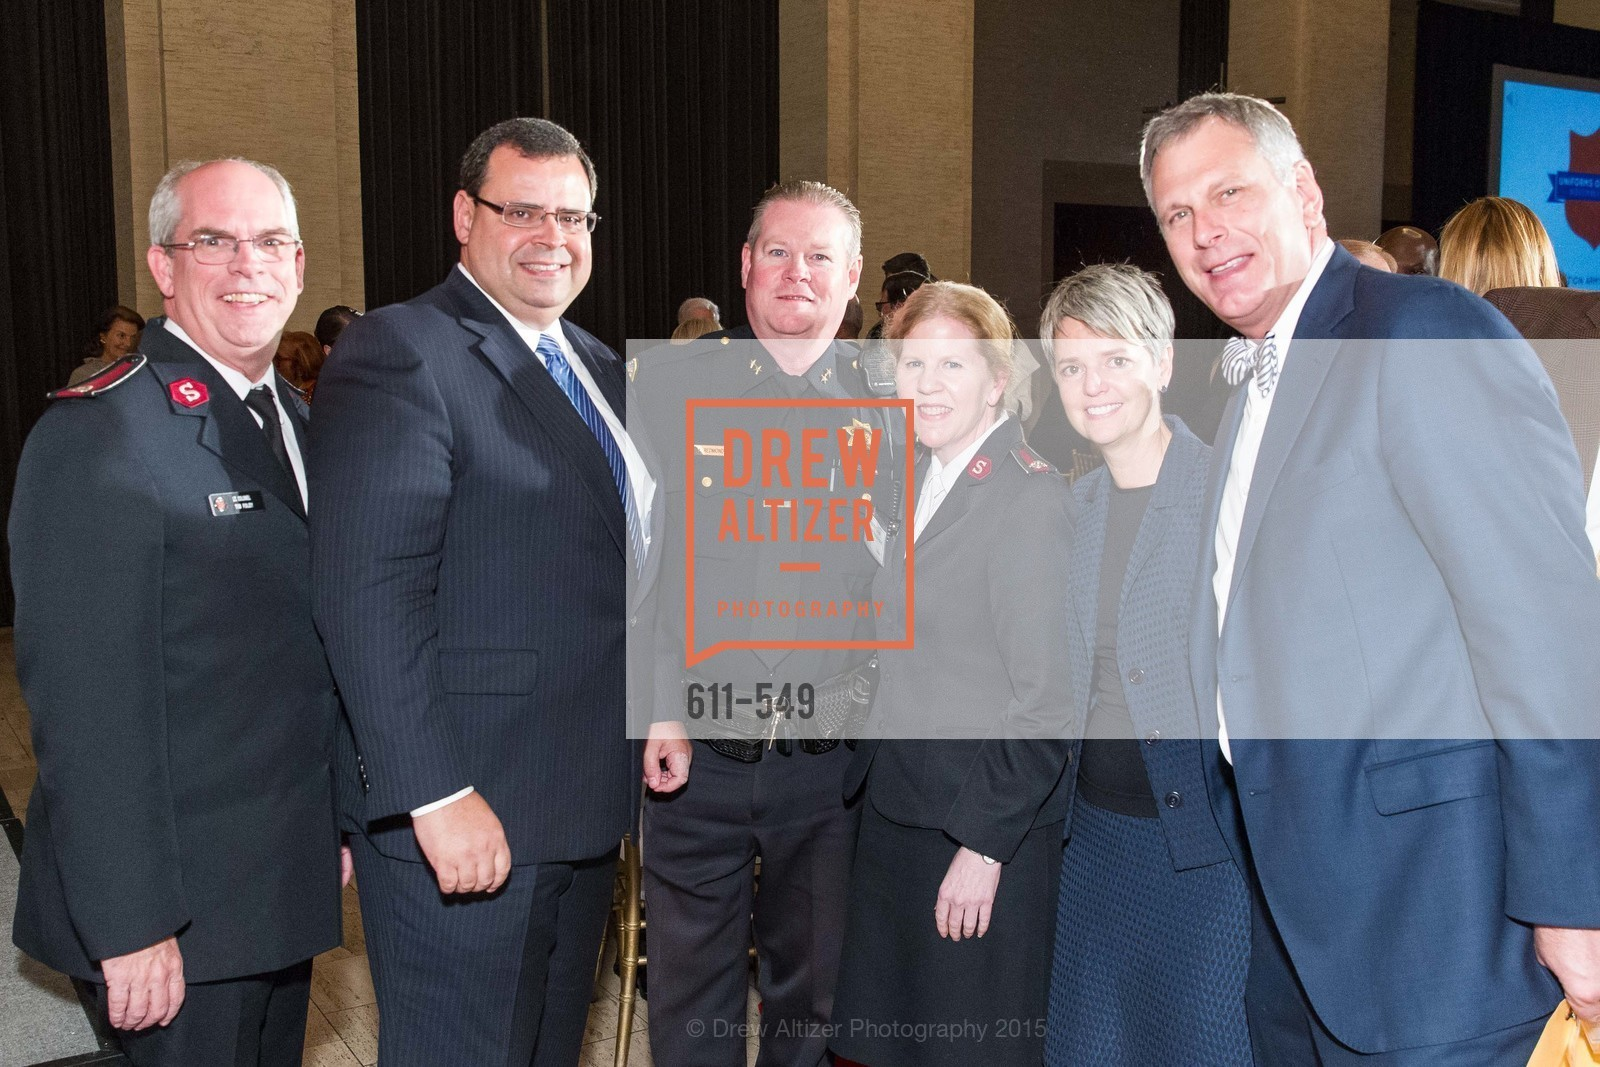 Lt. Col. Tim Foley, Brent Beabout, Mike Redmond, Lt. Col Cindy Foley, Julia Beabout, Ernst Bauer, The Salvation Army's 12th Annual Holiday Luncheon Kettle Kickoff, The Bently Reserve. 301 Battery St, November 18th, 2015